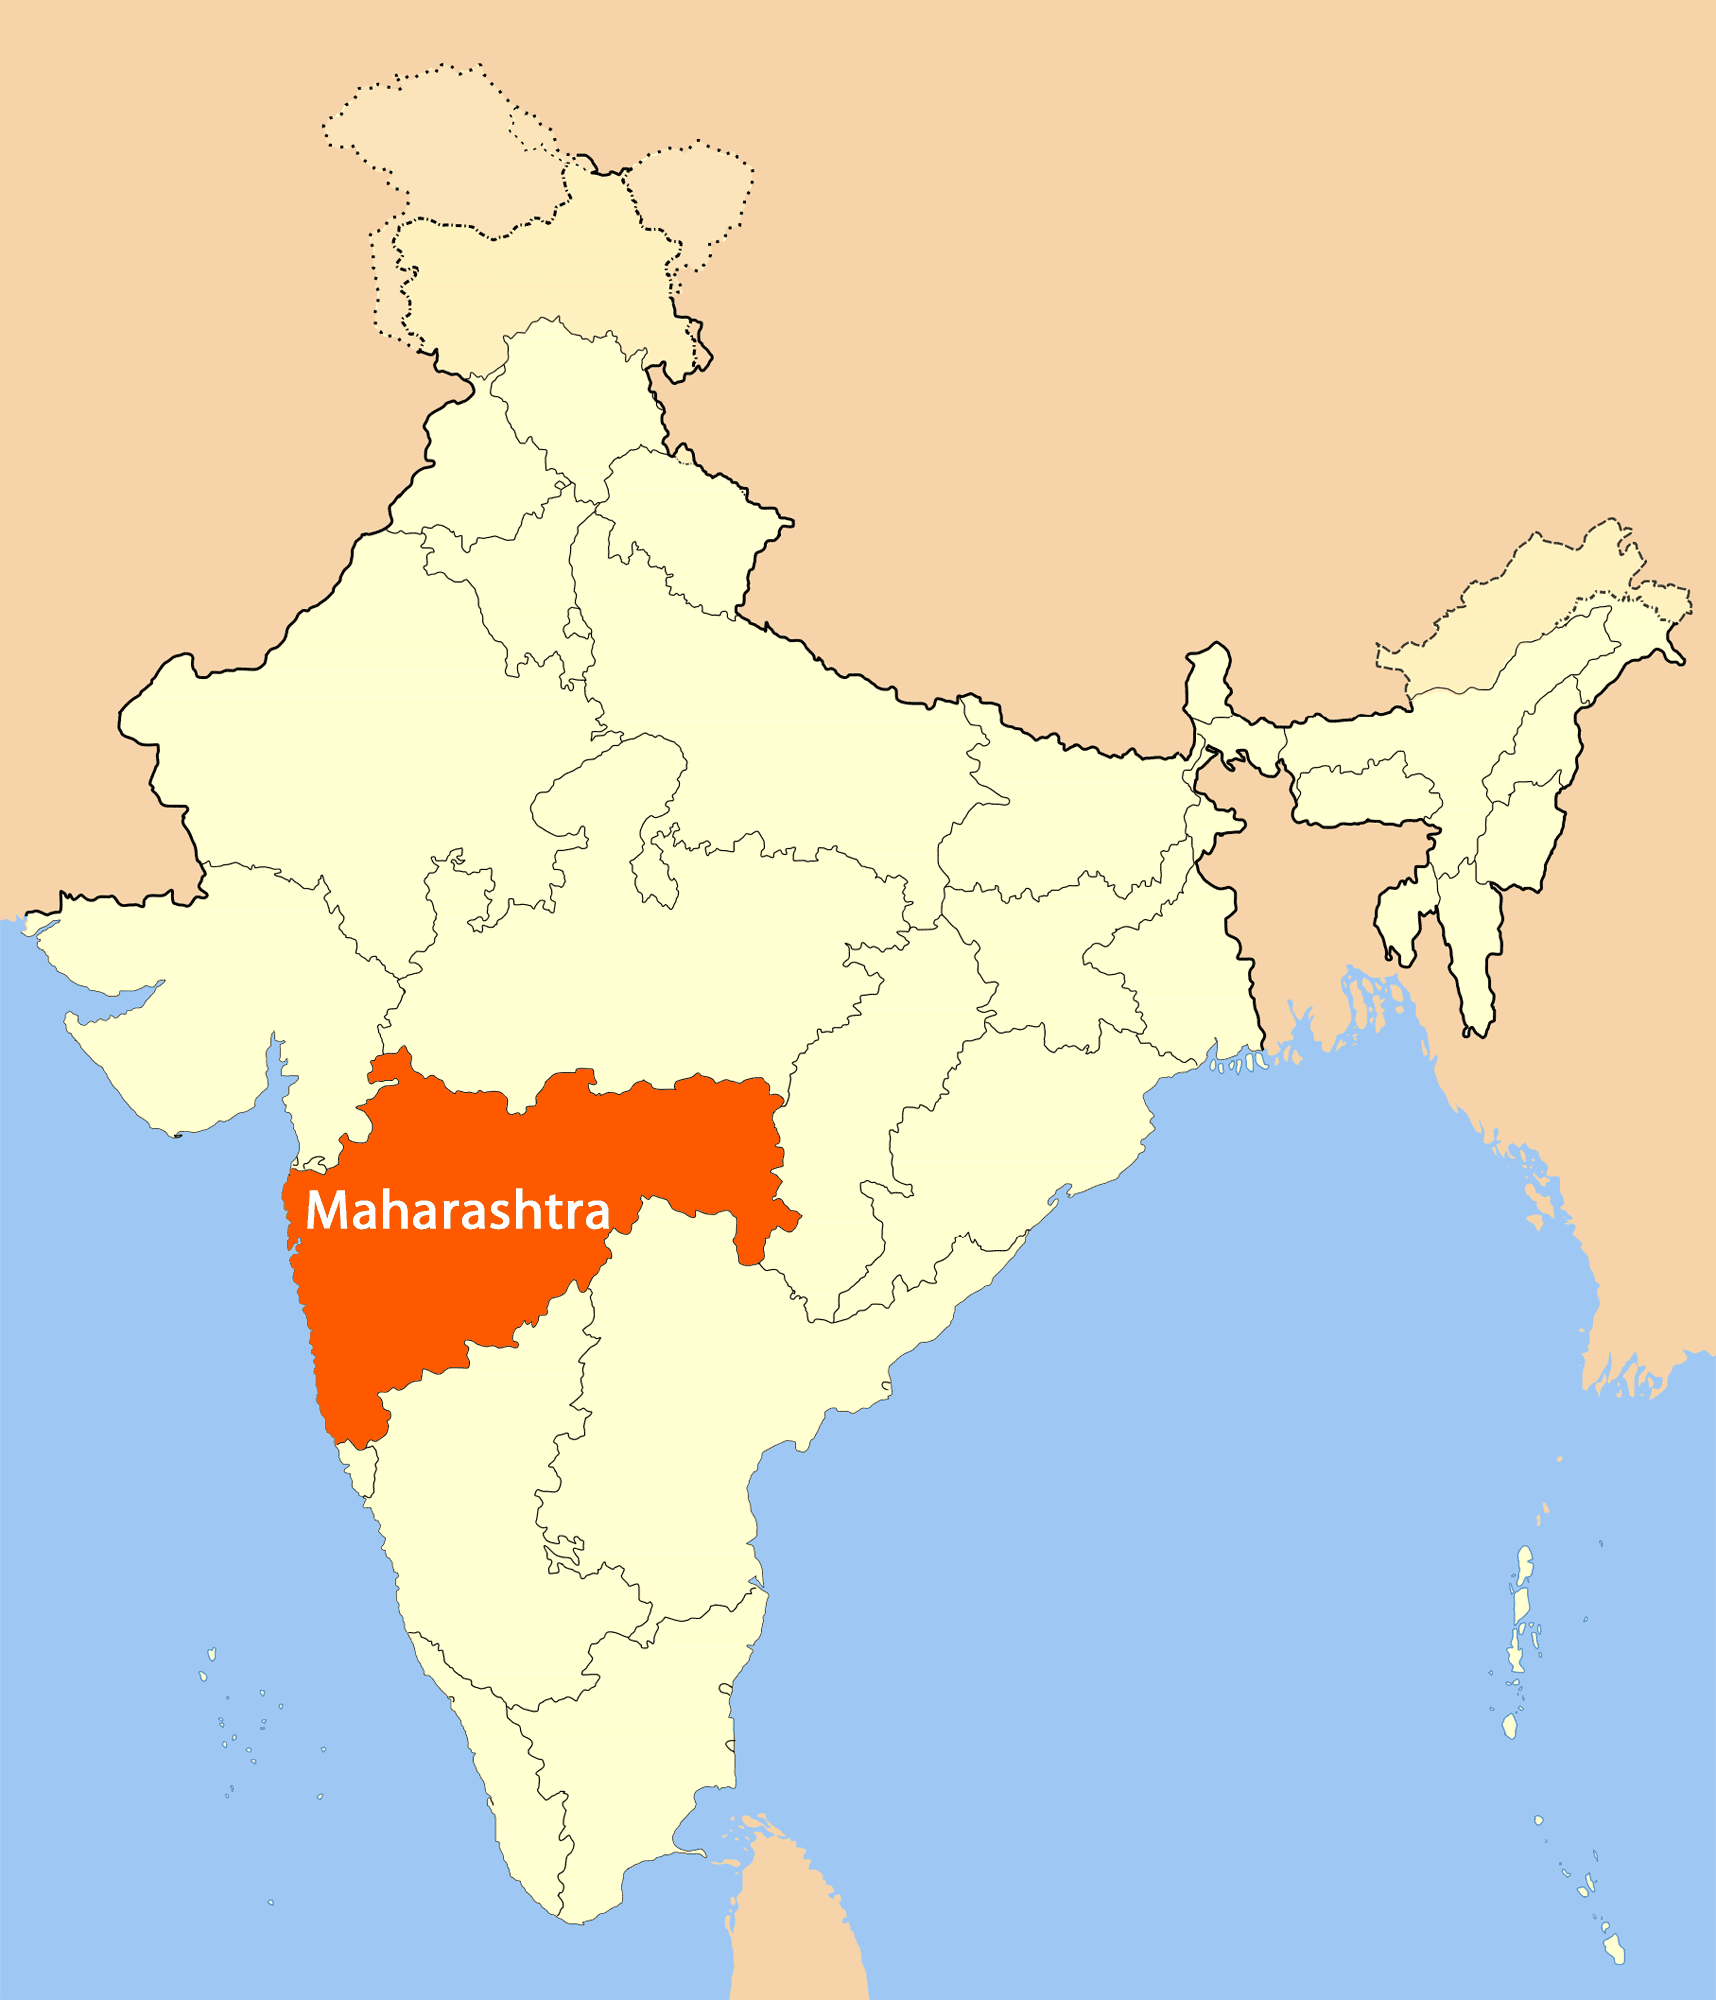 Mumbai Location Map Location Map of Maharashtra • Mapsof.net